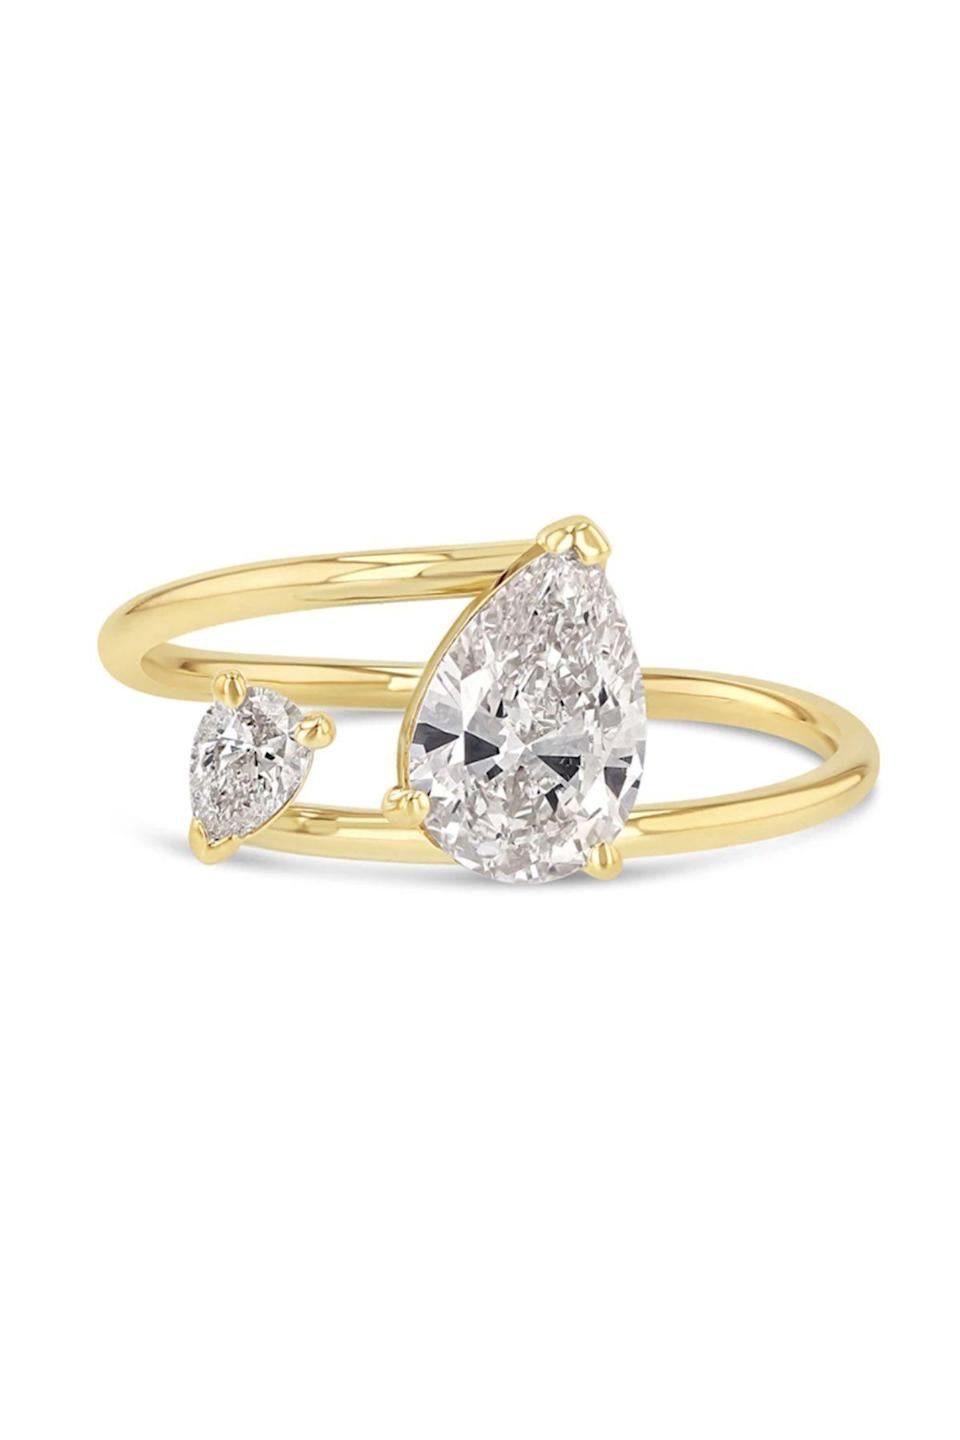 """<p><strong>Grace Lee</strong></p><p>gracelee.com</p><p><strong>$9880.00</strong></p><p><a href=""""https://gracelee.com/collections/bridal/products/twin-pear-ring"""" rel=""""nofollow noopener"""" target=""""_blank"""" data-ylk=""""slk:Shop Now"""" class=""""link rapid-noclick-resp"""">Shop Now</a></p><p>Grace Lee creates an asymmetric design that proves two solitaires just might be better than one. </p>"""